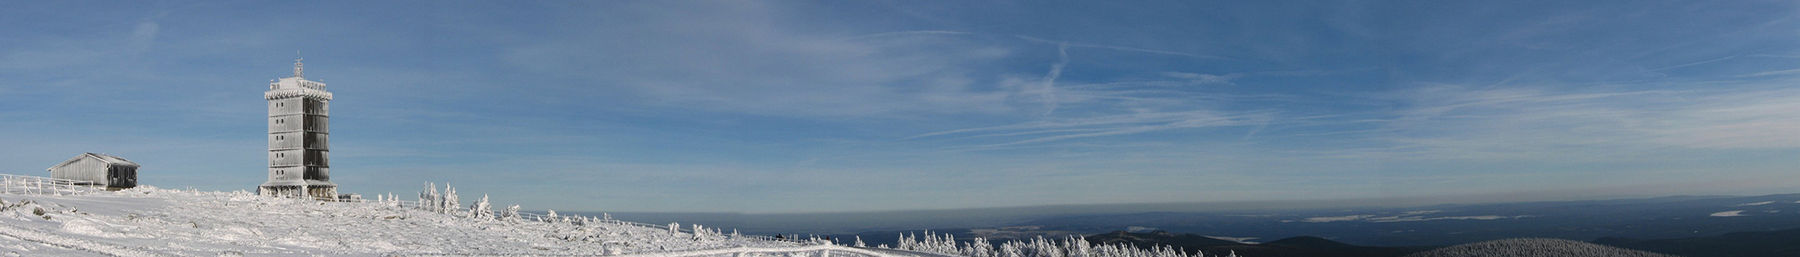 Brocken in winter